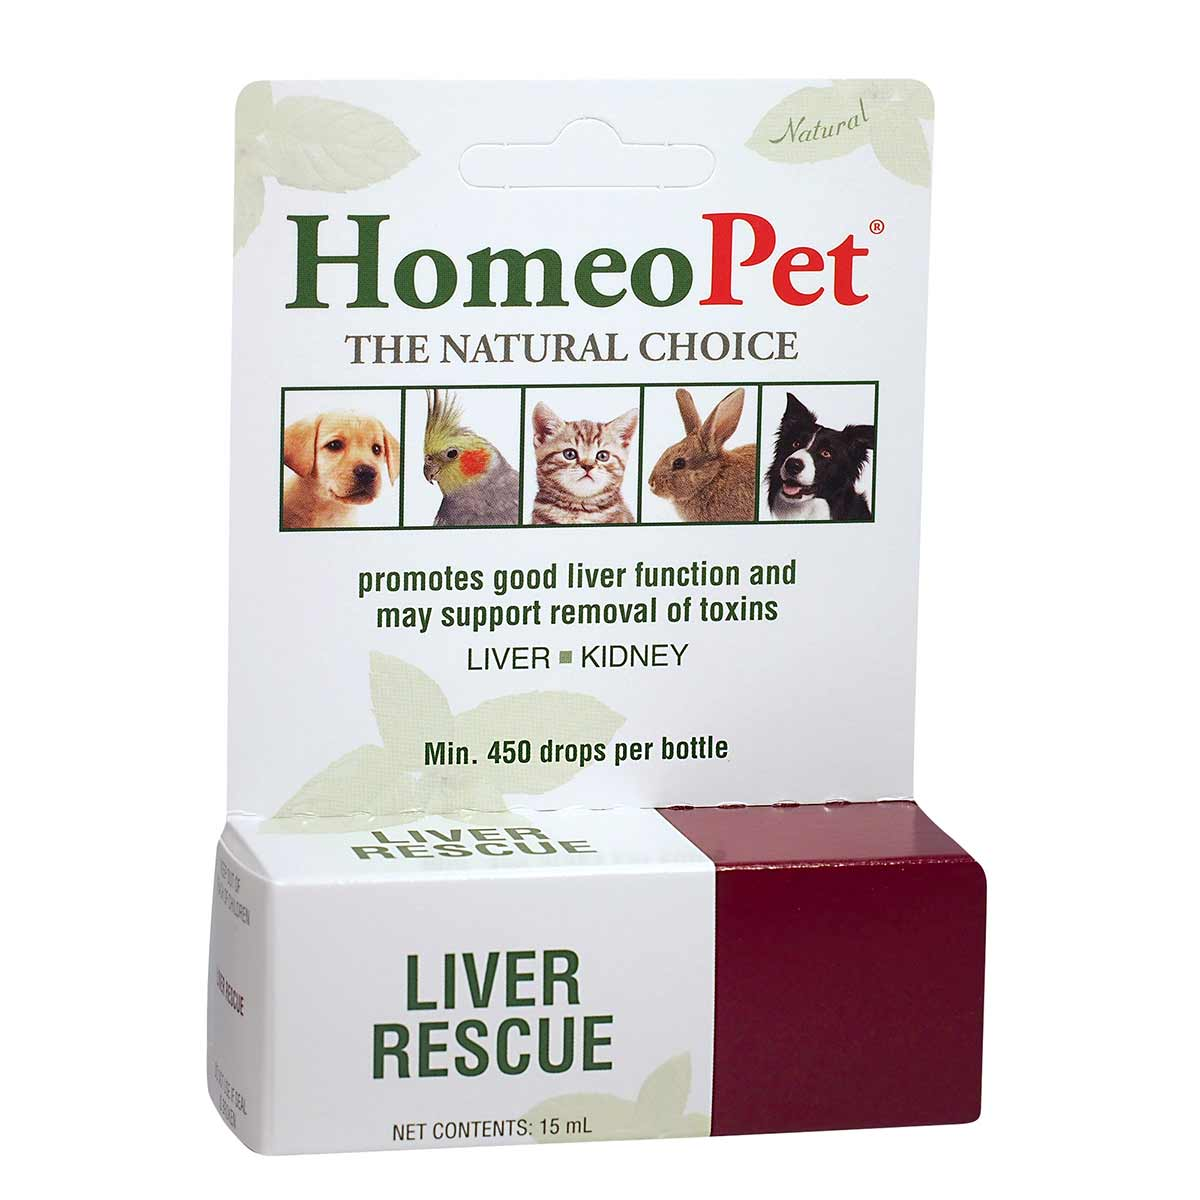 Natural HomeoPet Liver Rescue Treatment for Pets